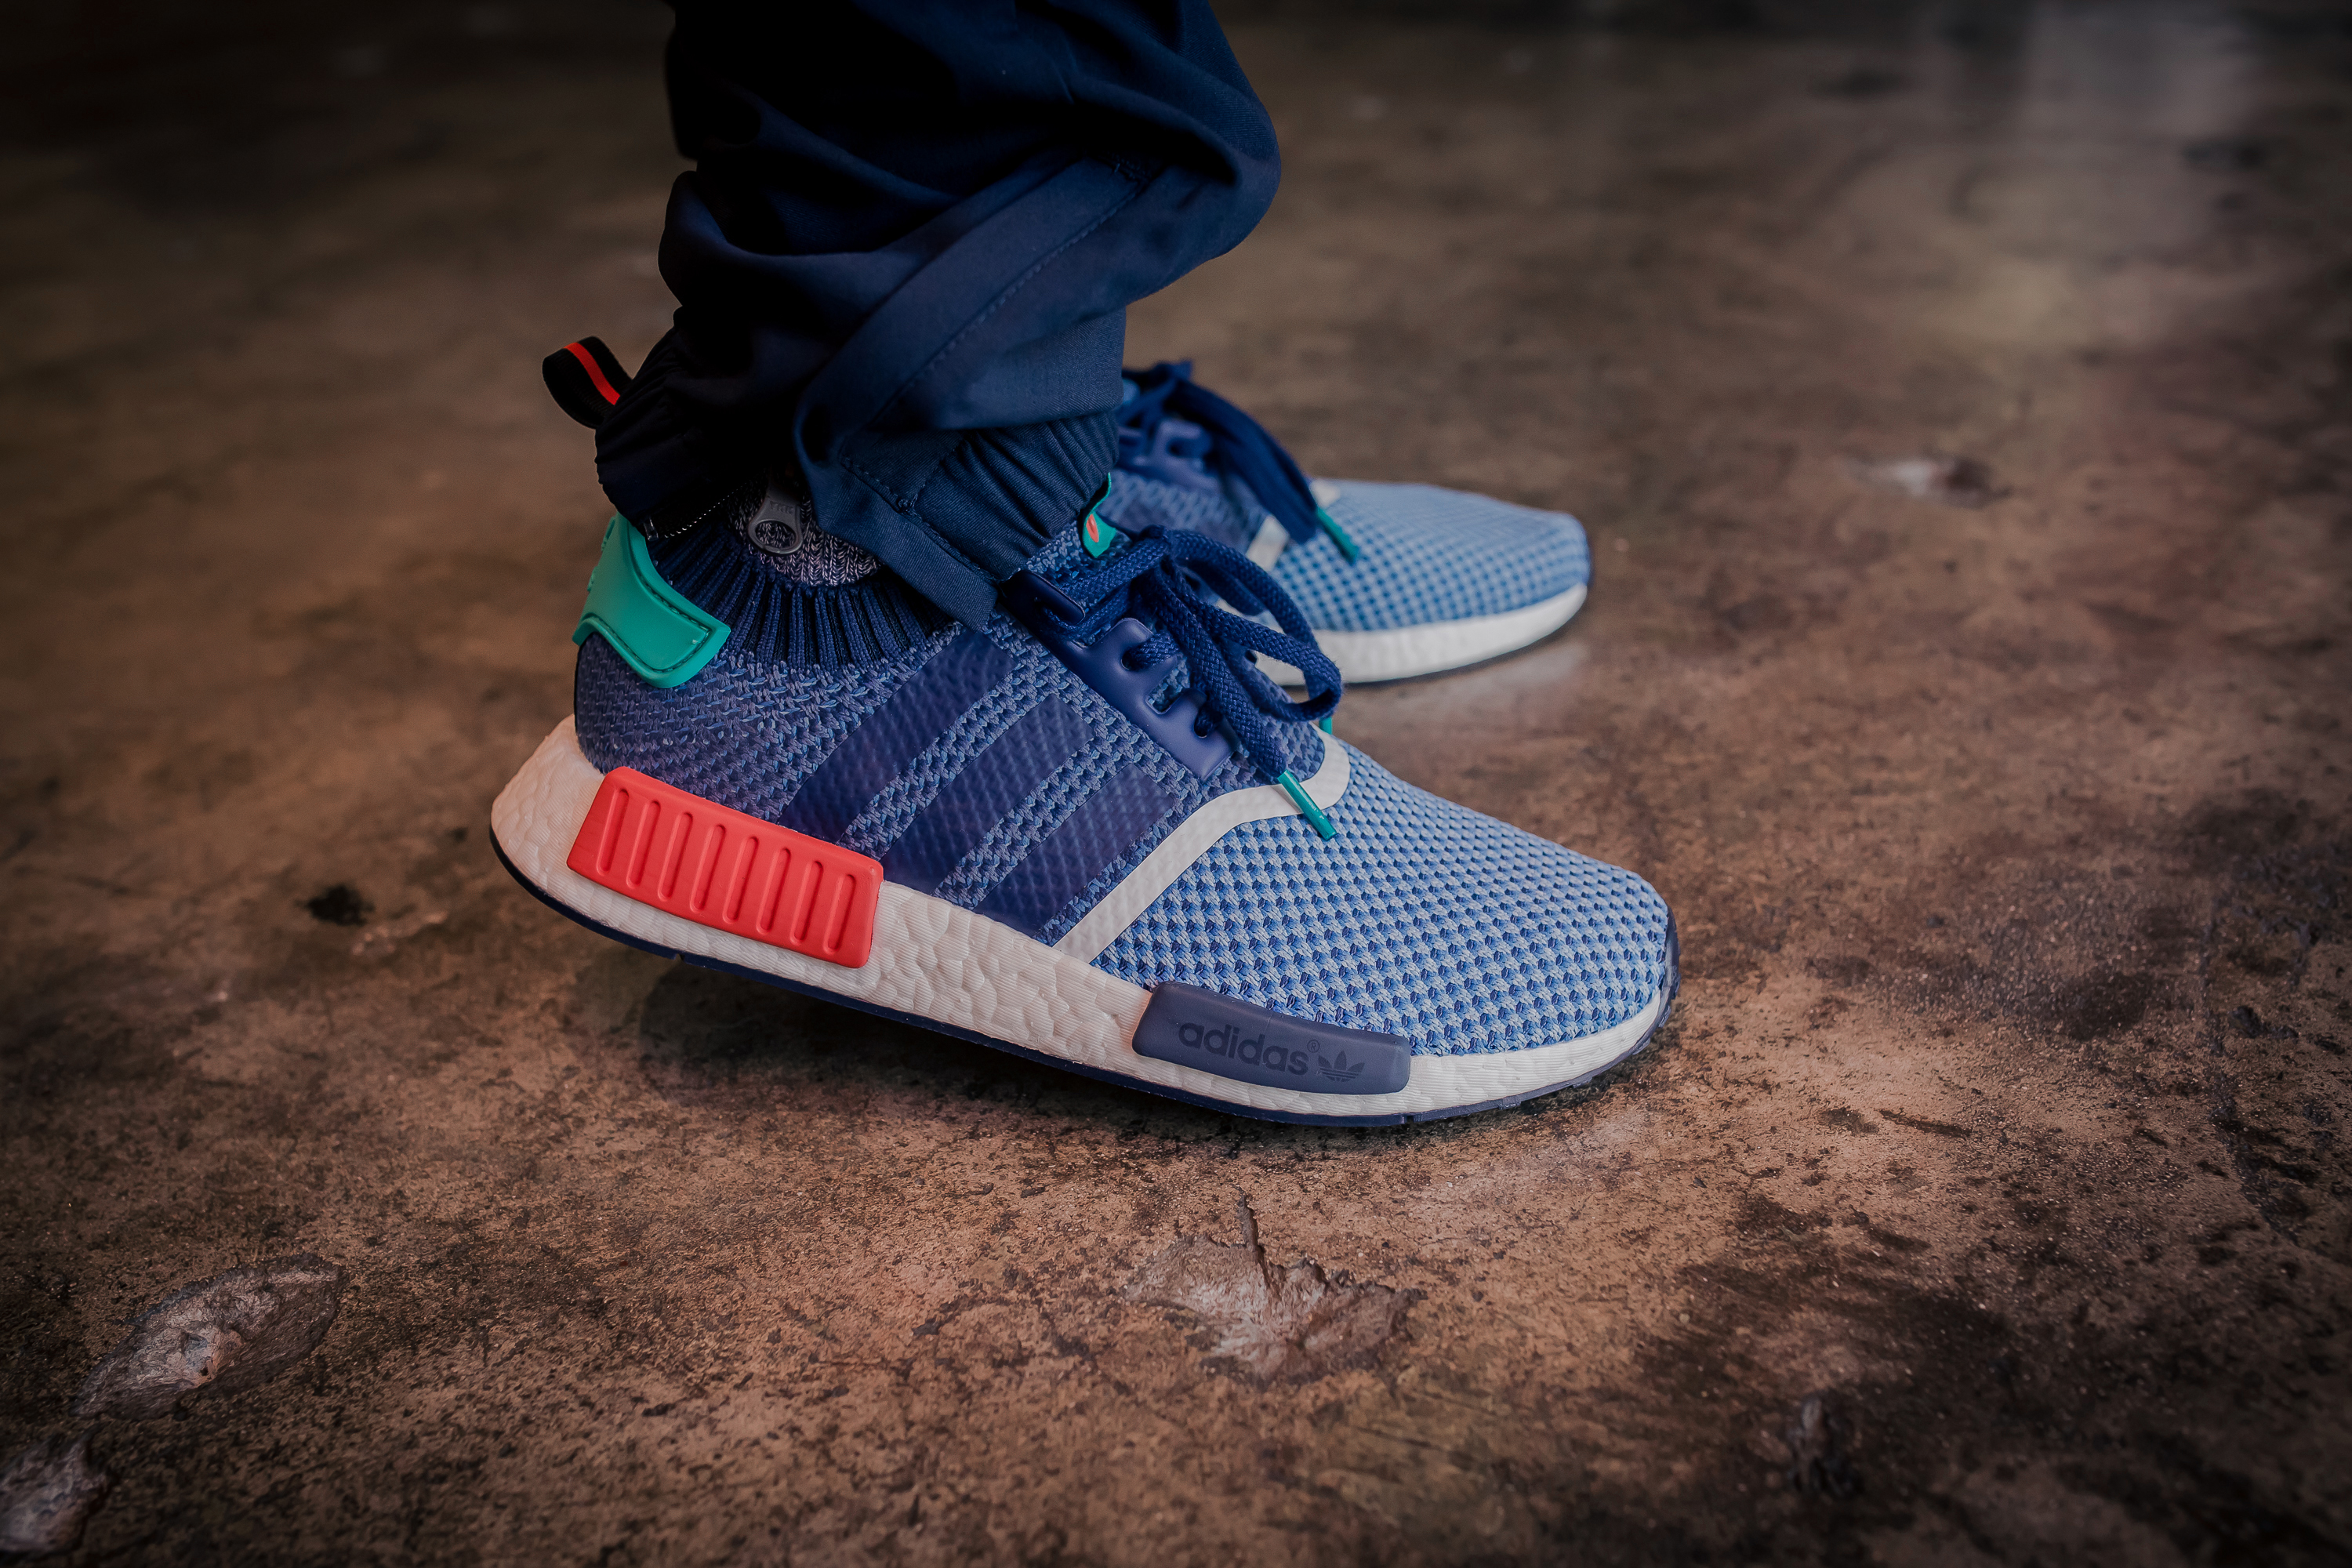 fb7af271b Packer Shoes x adidas Consortium NMD Runner PK (Detailed Pics   Release  Info)